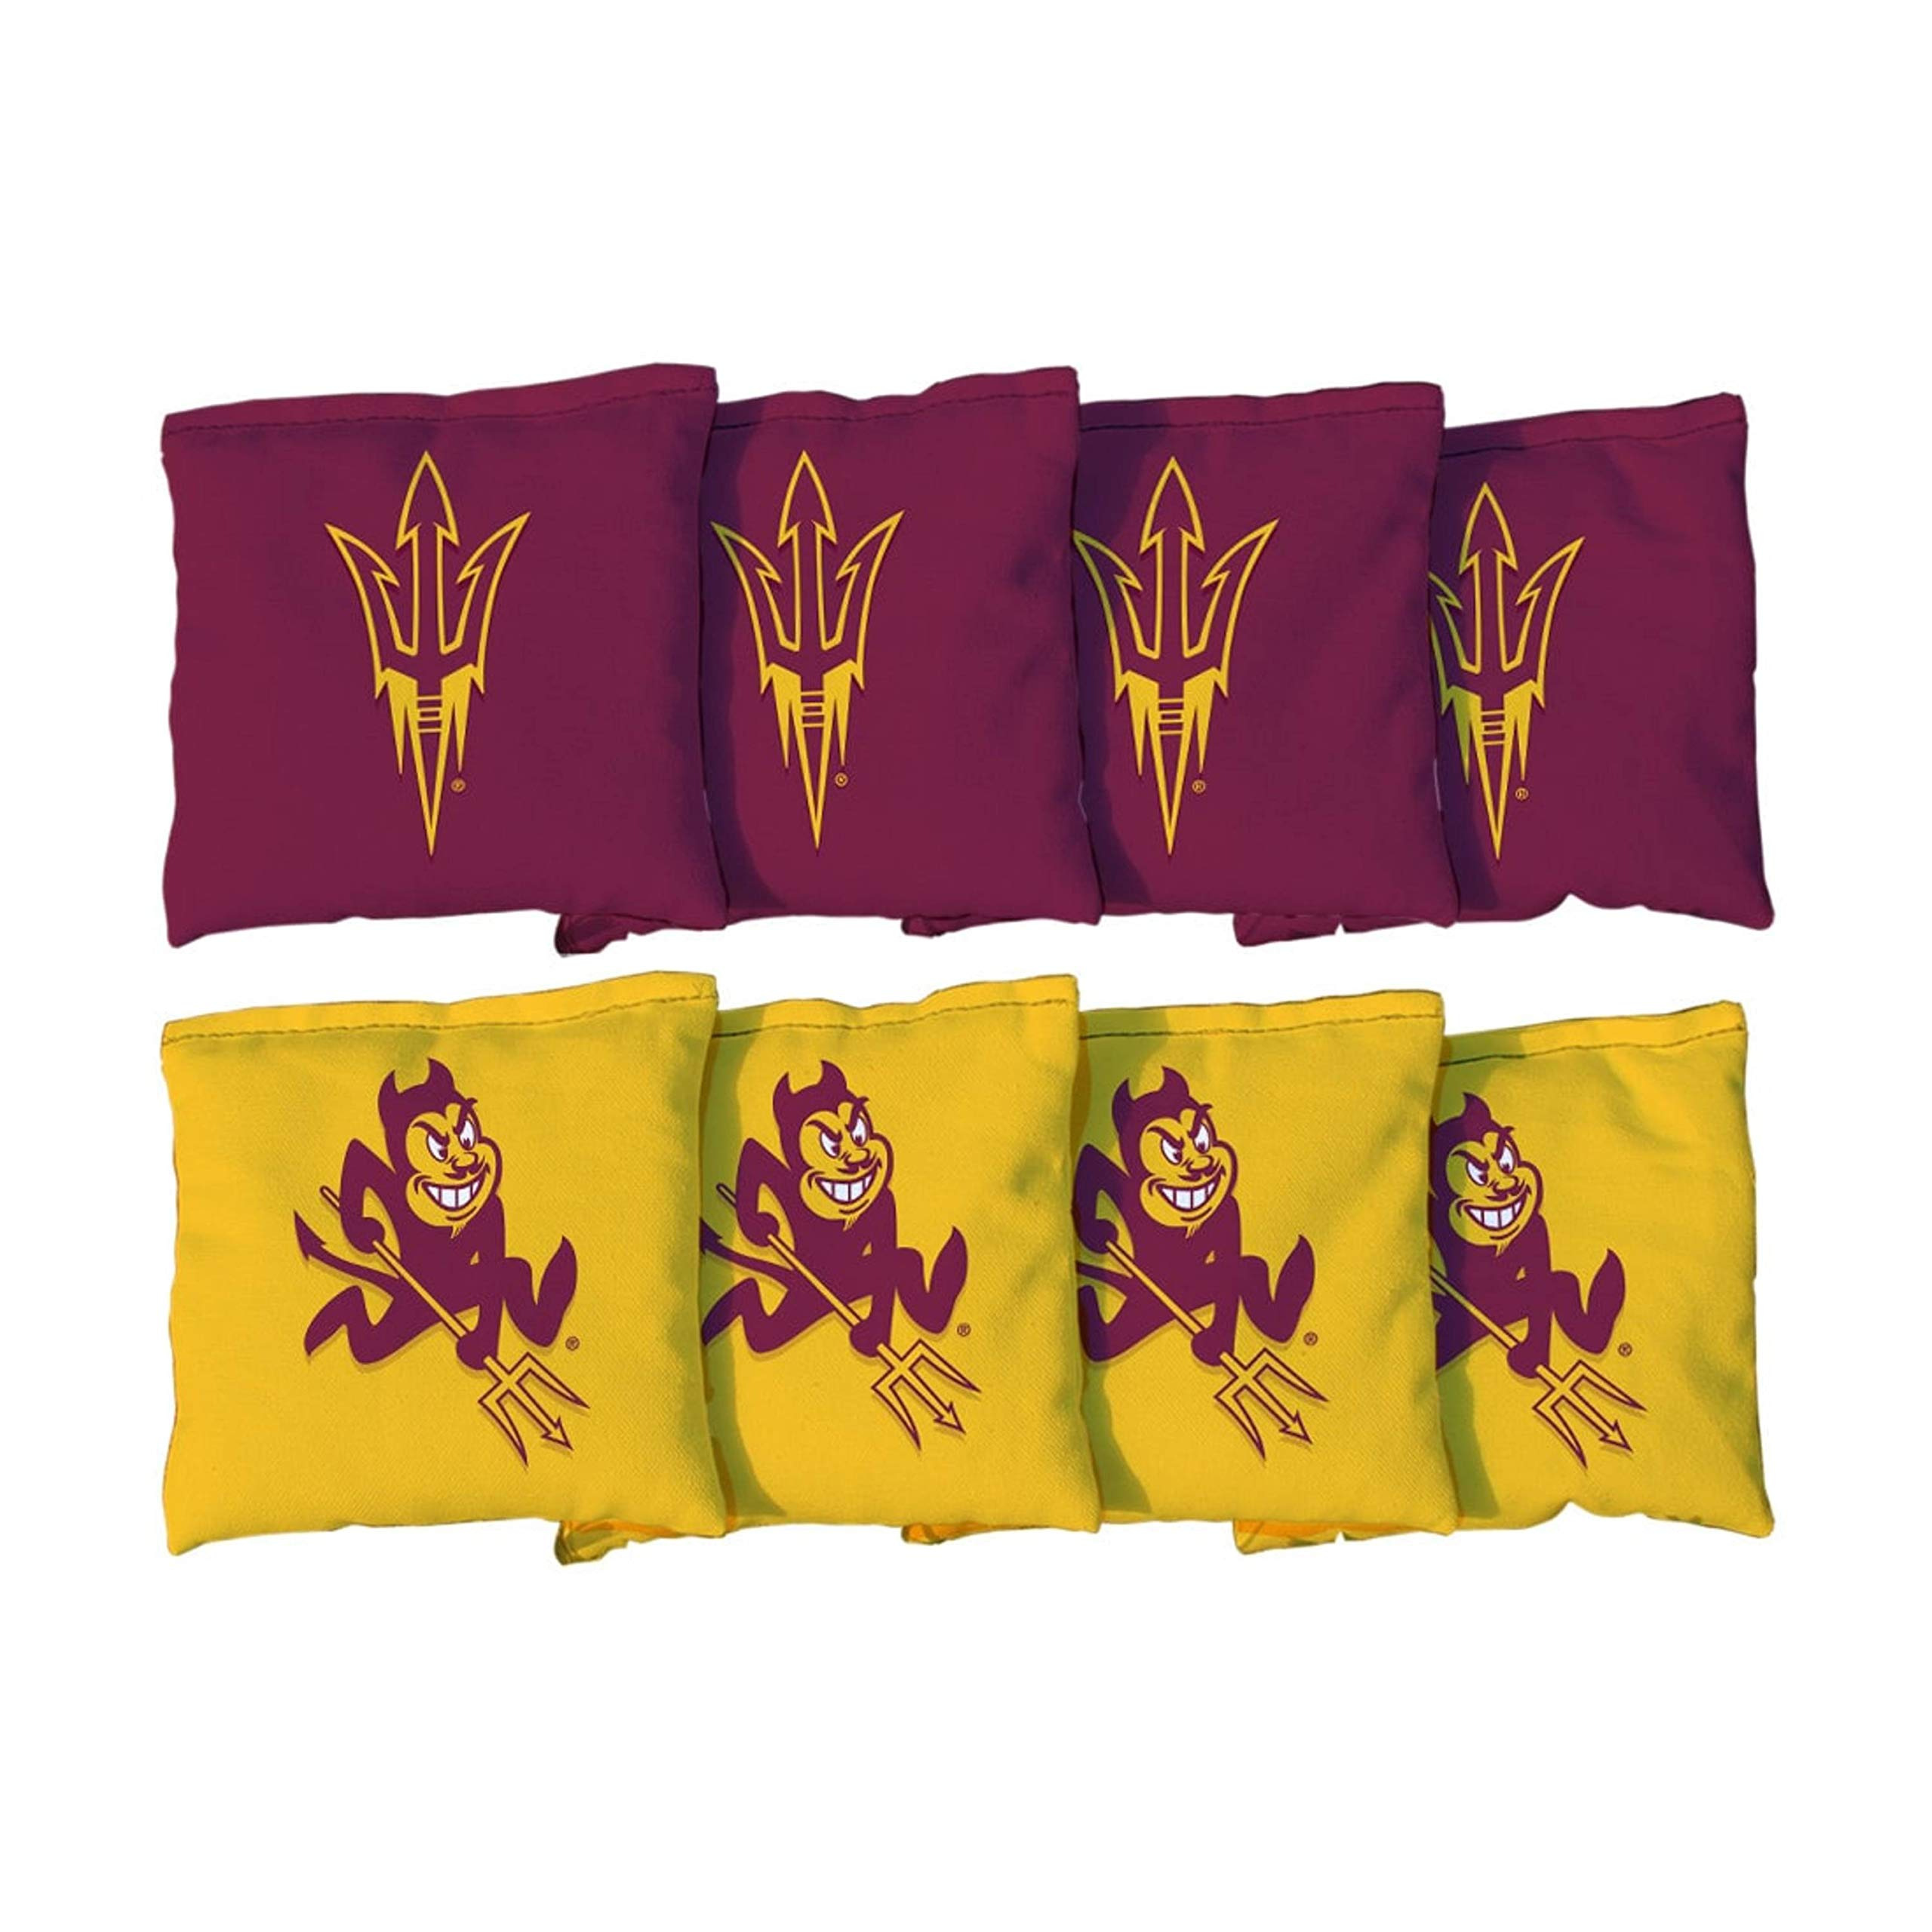 Victory Tailgate NCAA Collegiate Regulation Cornhole Game Bag Set (8 Bags Included, Corn-Filled) - Arizona State University Sun Devils by Victory Tailgate